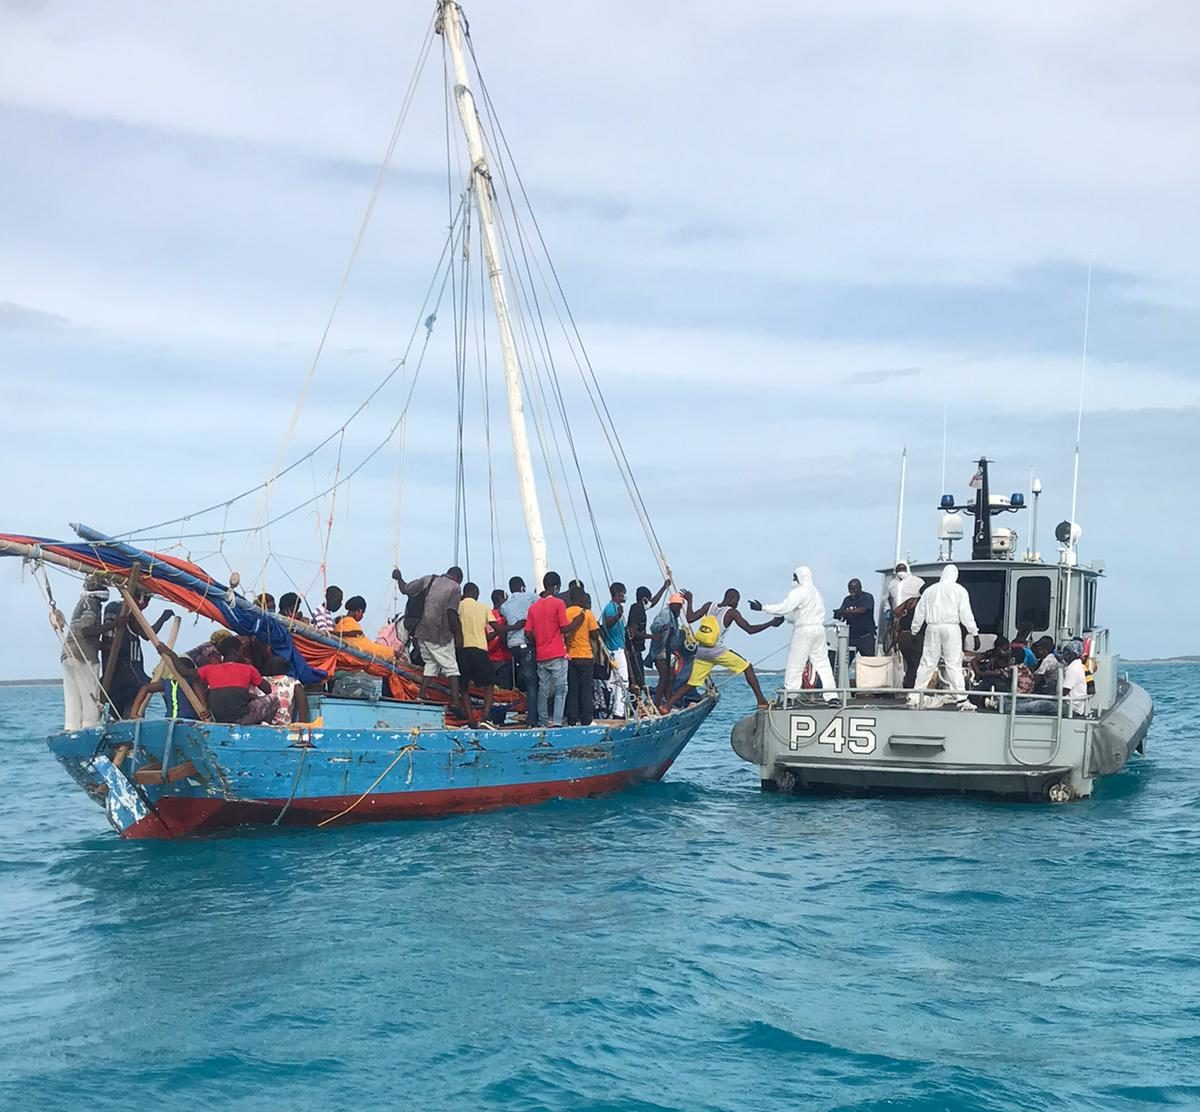 Presence on the sea ramped up amid holiday illegal landings